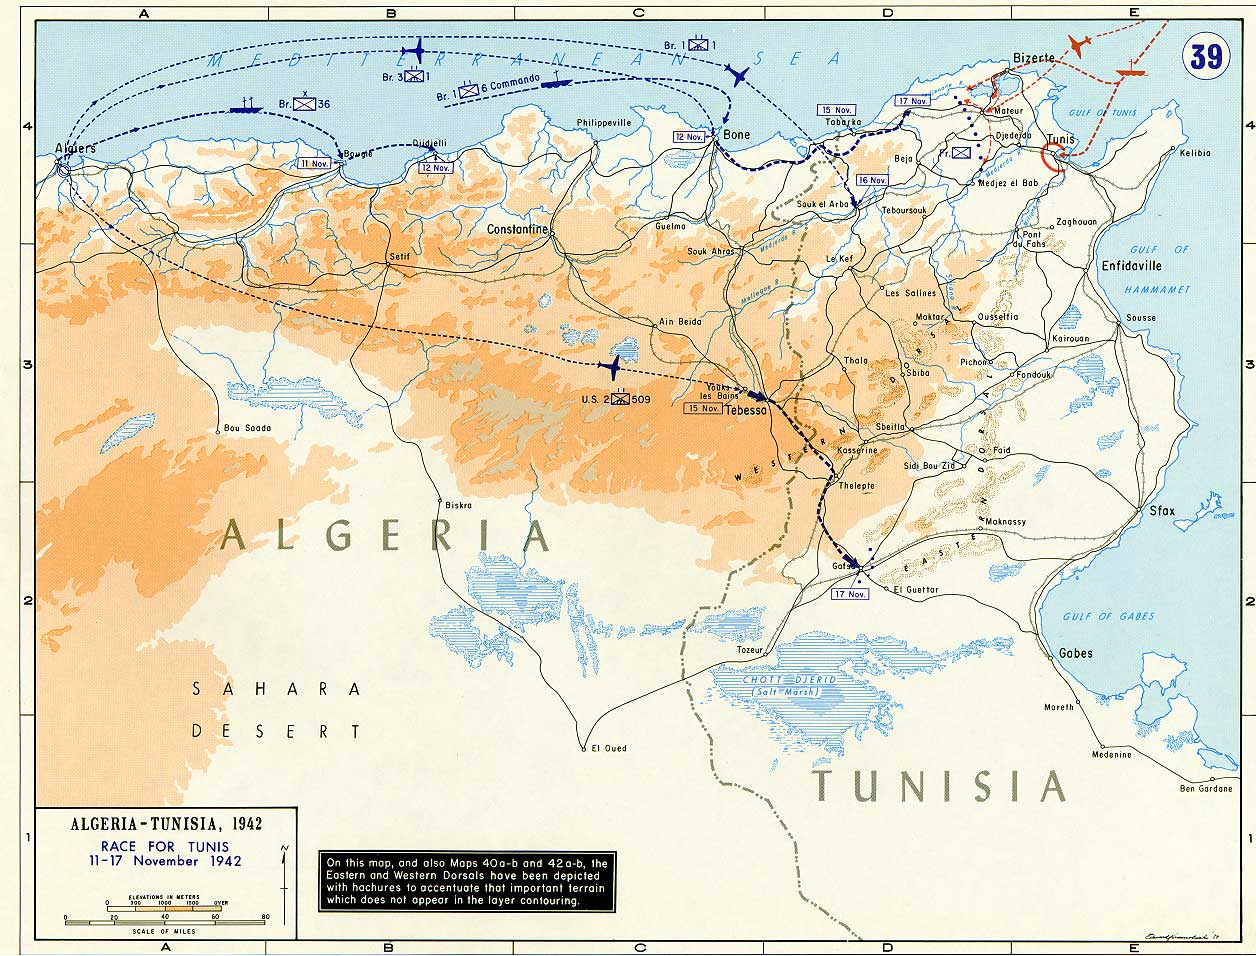 Algeria Location On World Map.Map Of Algeria And Tunisia November 1942